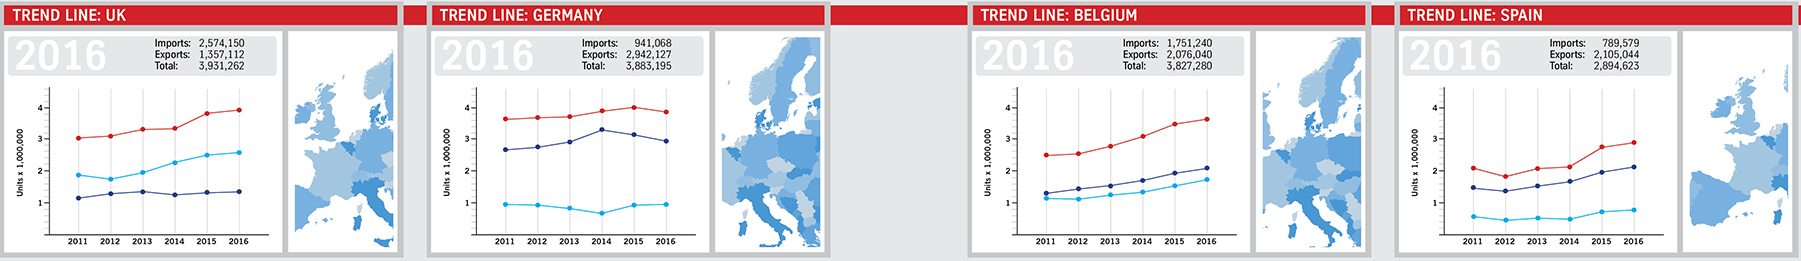 trend-line-by-country